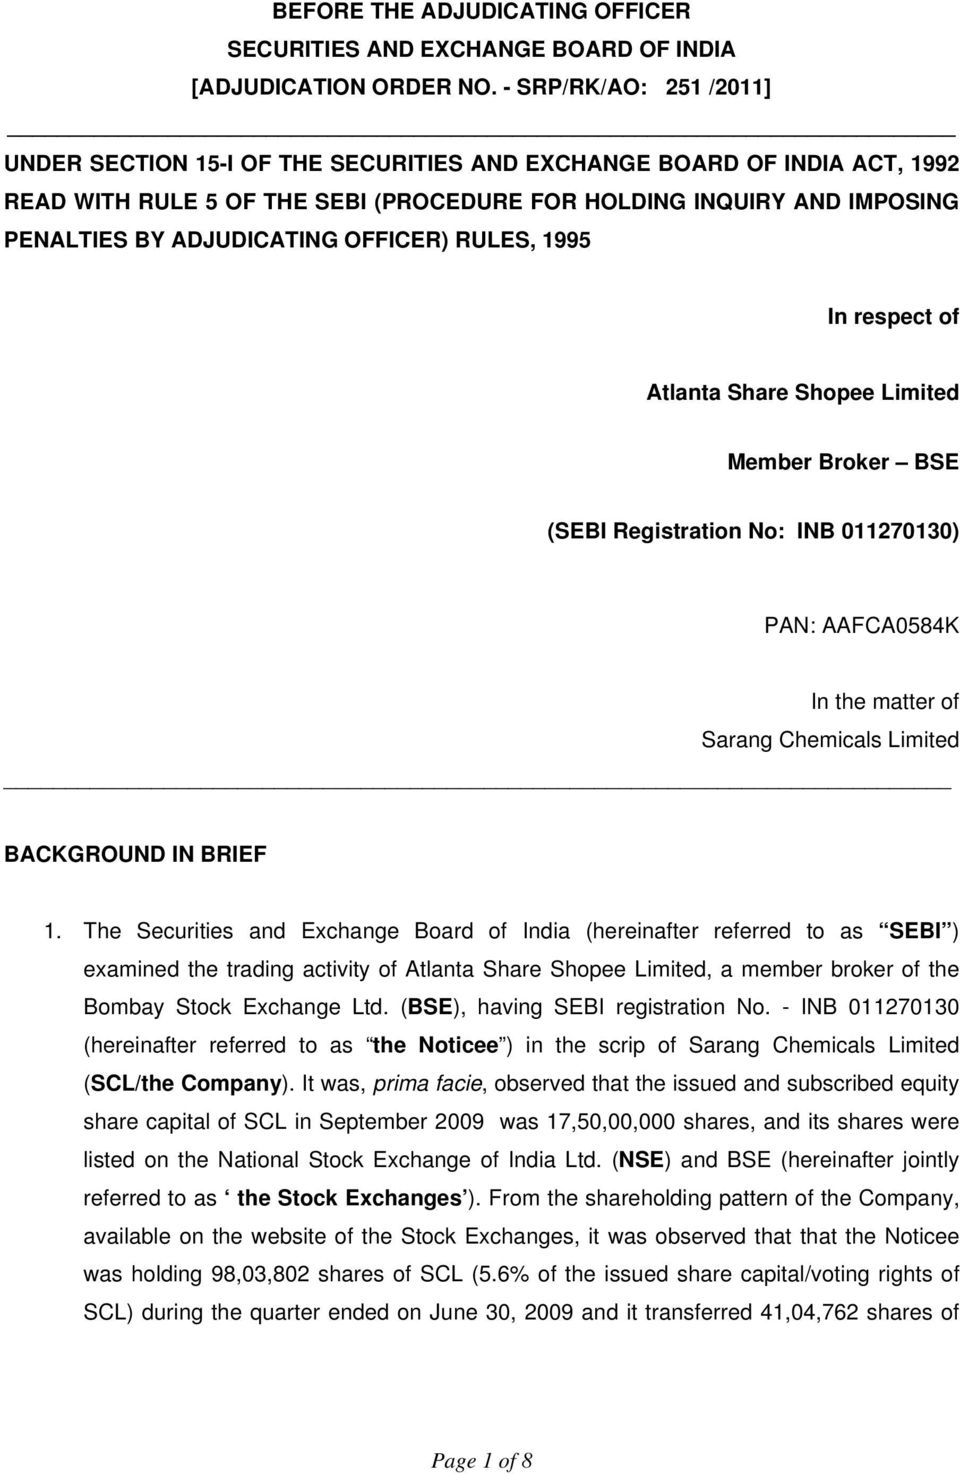 OFFICER) RULES, 1995 In respect of Atlanta Share Shopee Limited Member Broker BSE (SEBI Registration No: INB 011270130) PAN: AAFCA0584K In the matter of Sarang Chemicals Limited BACKGROUND IN BRIEF 1.